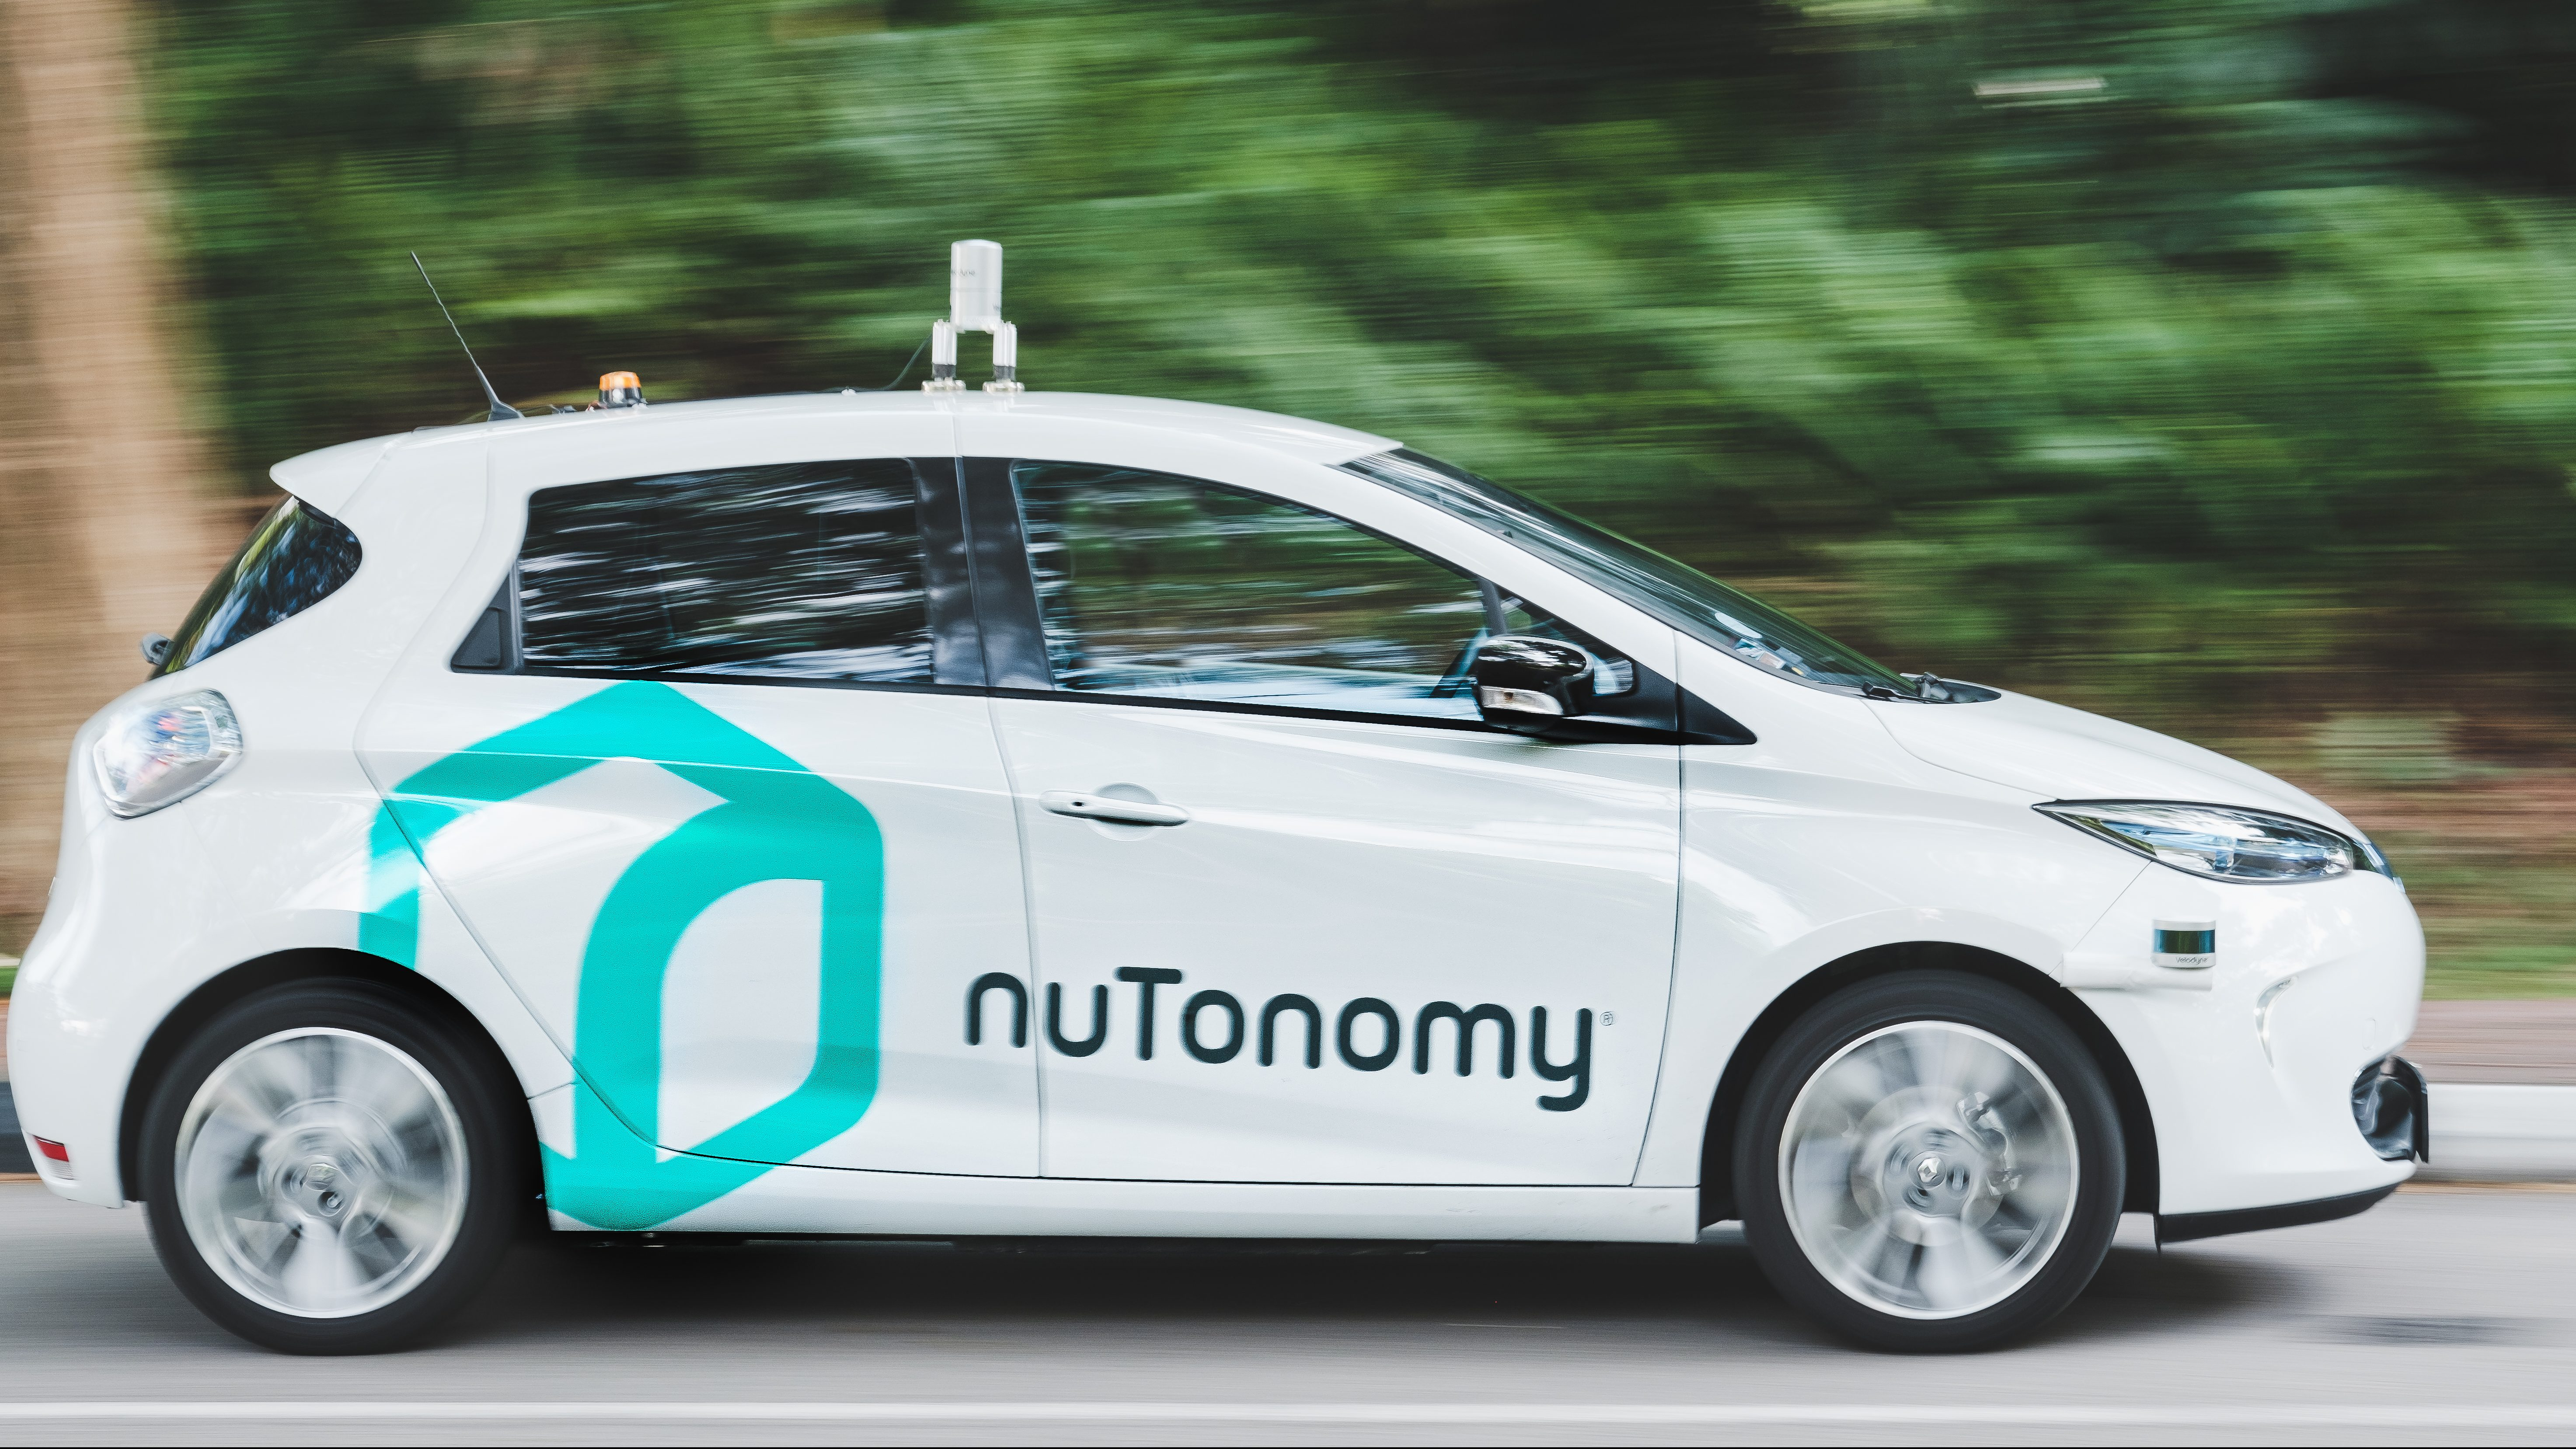 A NuTonomy self-driving taxi in Singapore